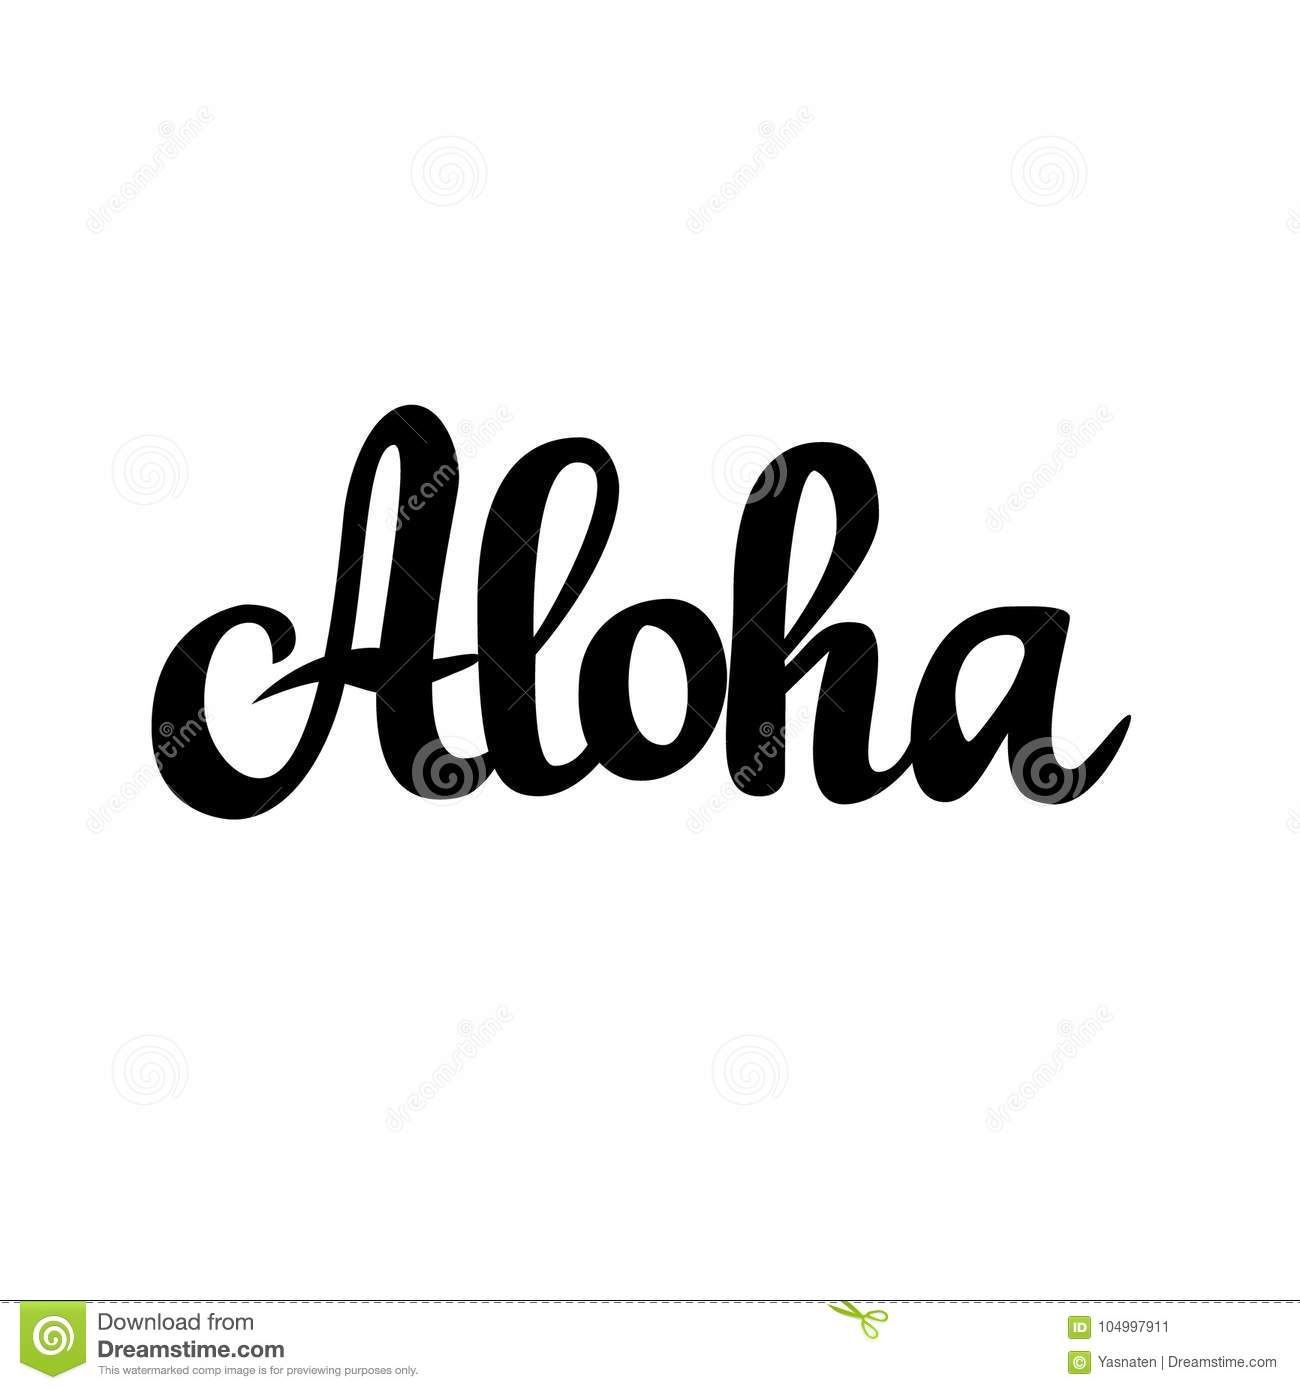 Aloha hawaiian greeting vector calligraphy design stock vector download aloha hawaiian greeting vector calligraphy design stock vector illustration of fashion sign m4hsunfo